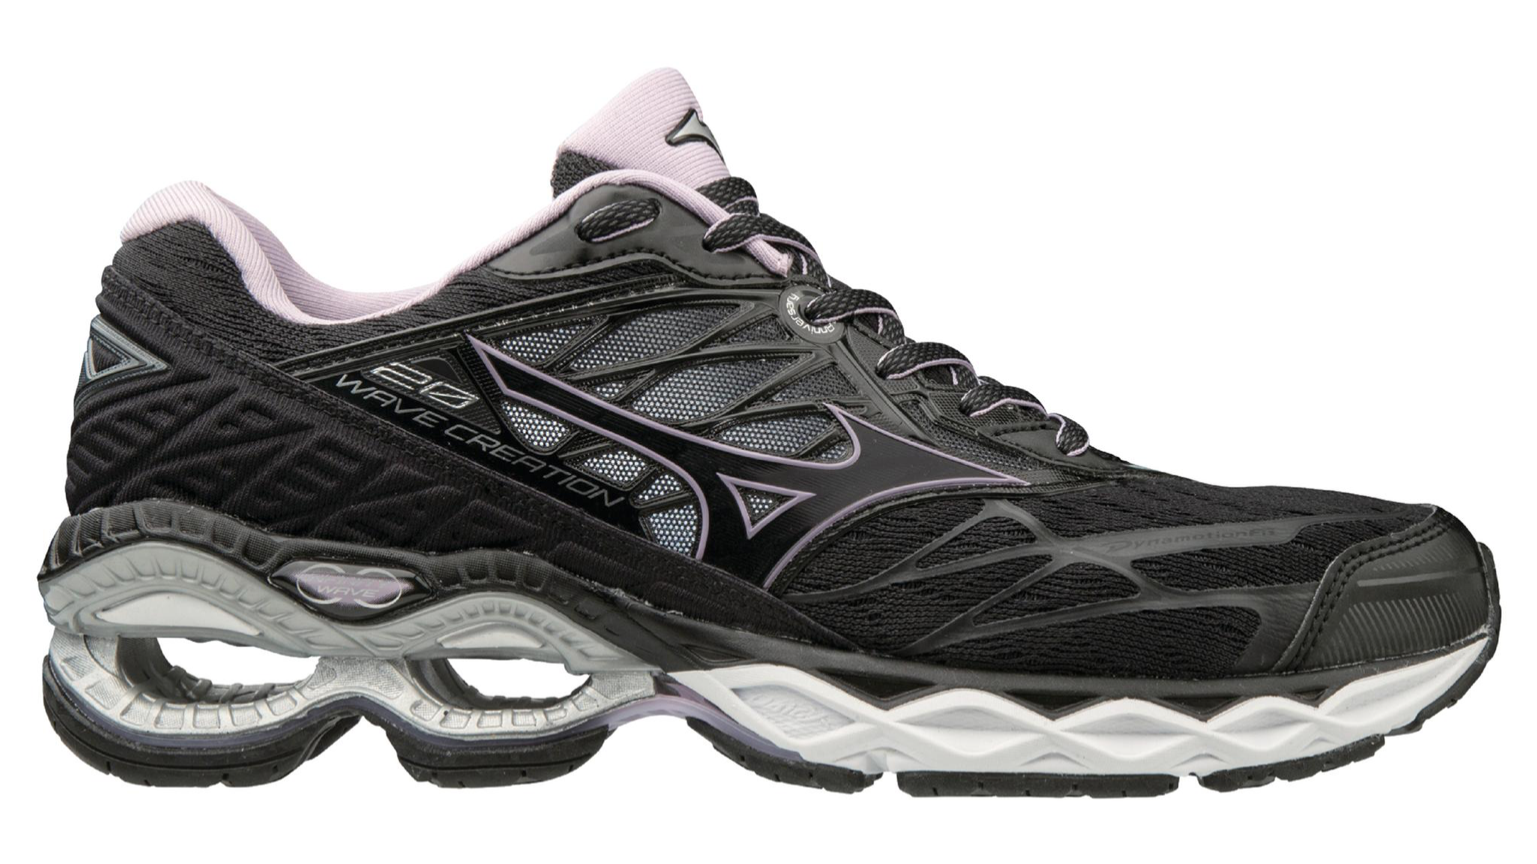 a9a8189c19eaf Mizuno Running Shoes 2019 | 9 Best Shoes from Mizuno